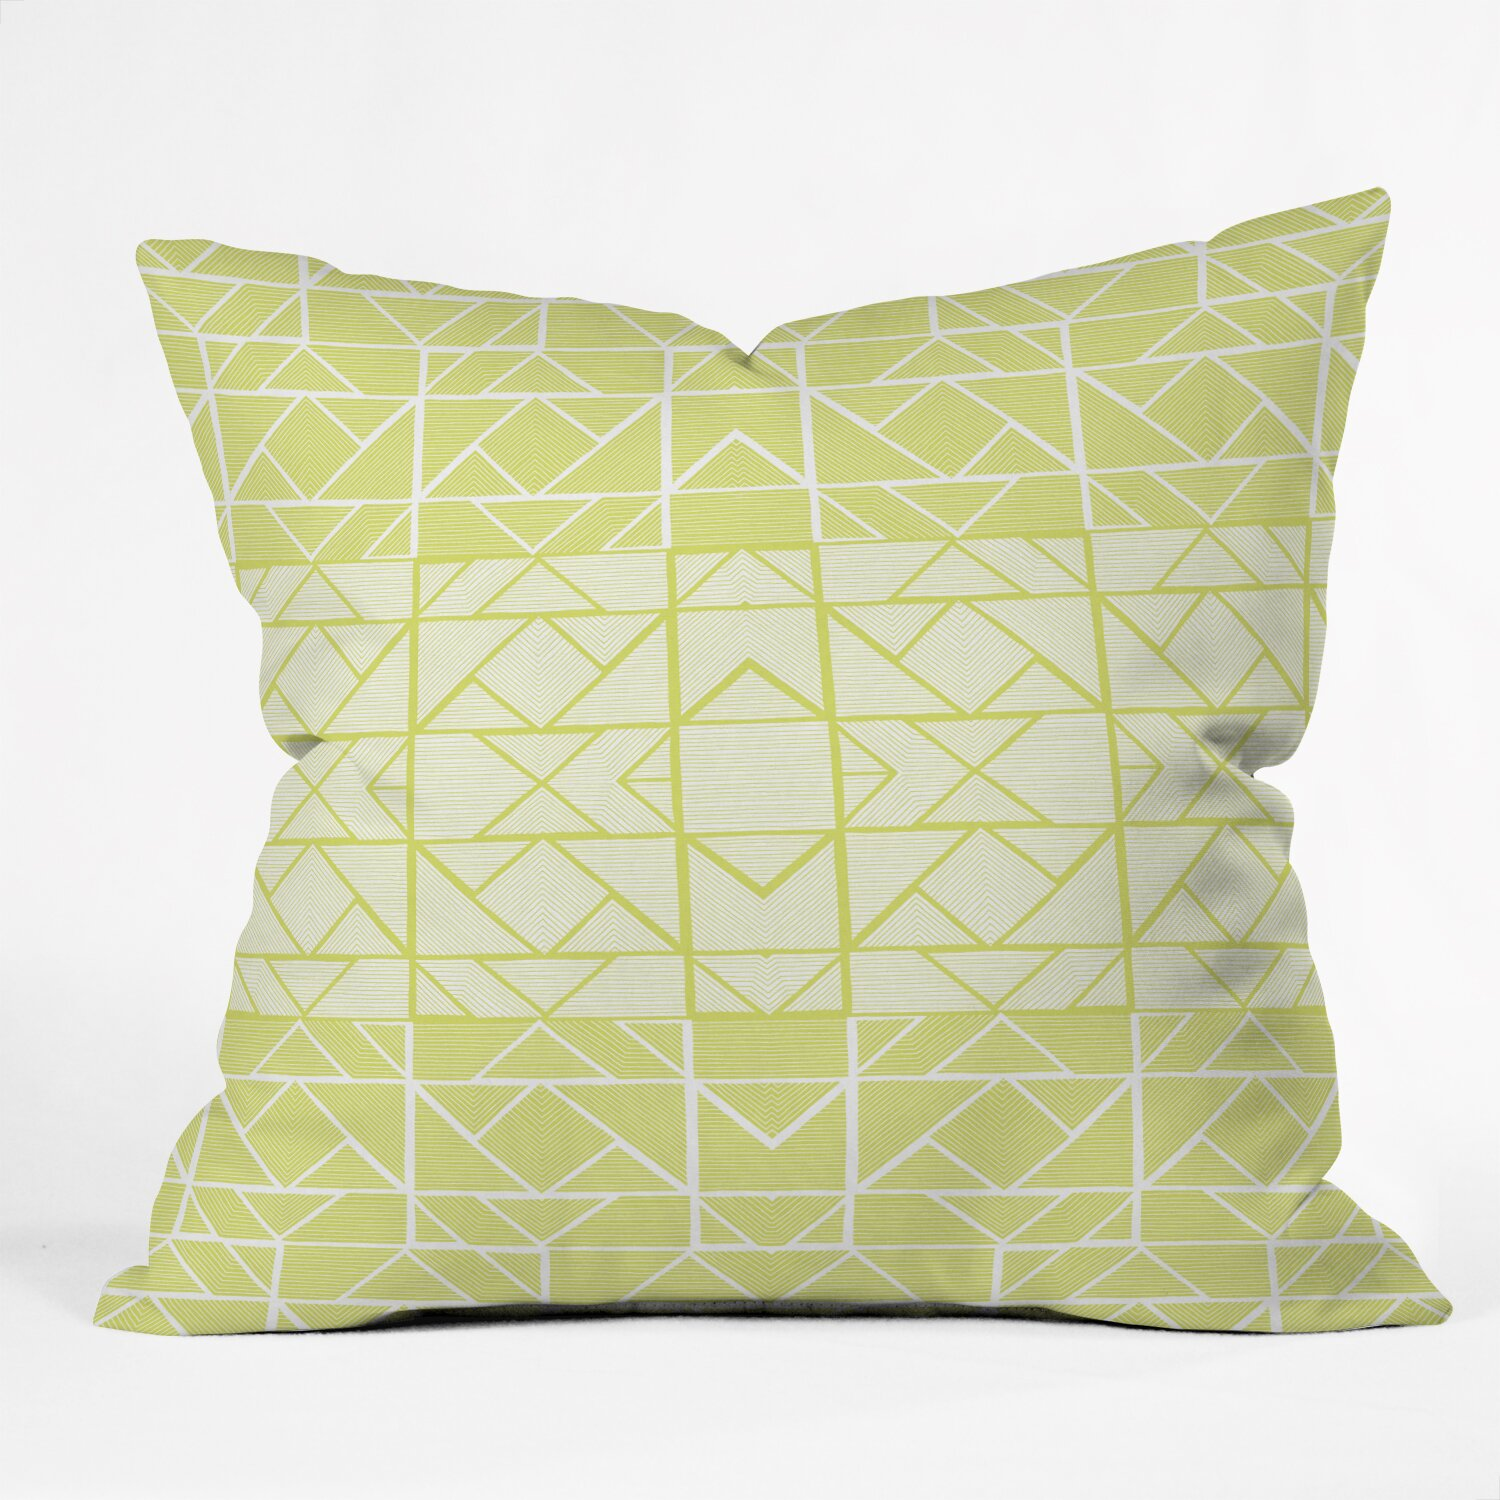 Oversized Decorative Pillow Ideas : DENY Designs Gneural Shifting Pyramids Lemon Indoor/Outdoor Throw Pillow AllModern